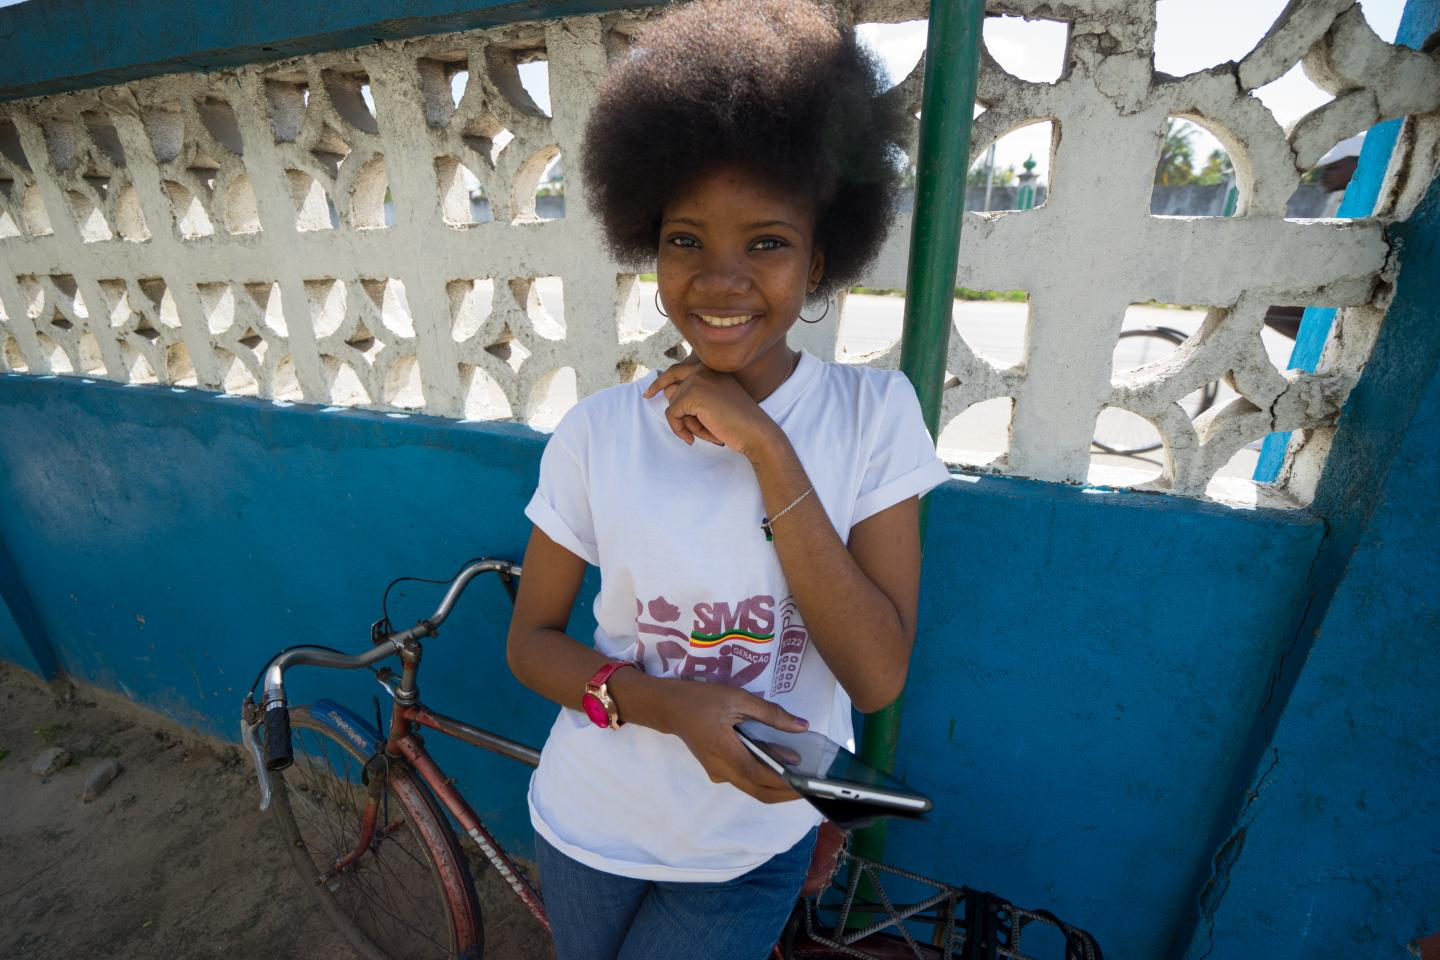 A teenage girl holds a mobile phone and smiles, Mozambique